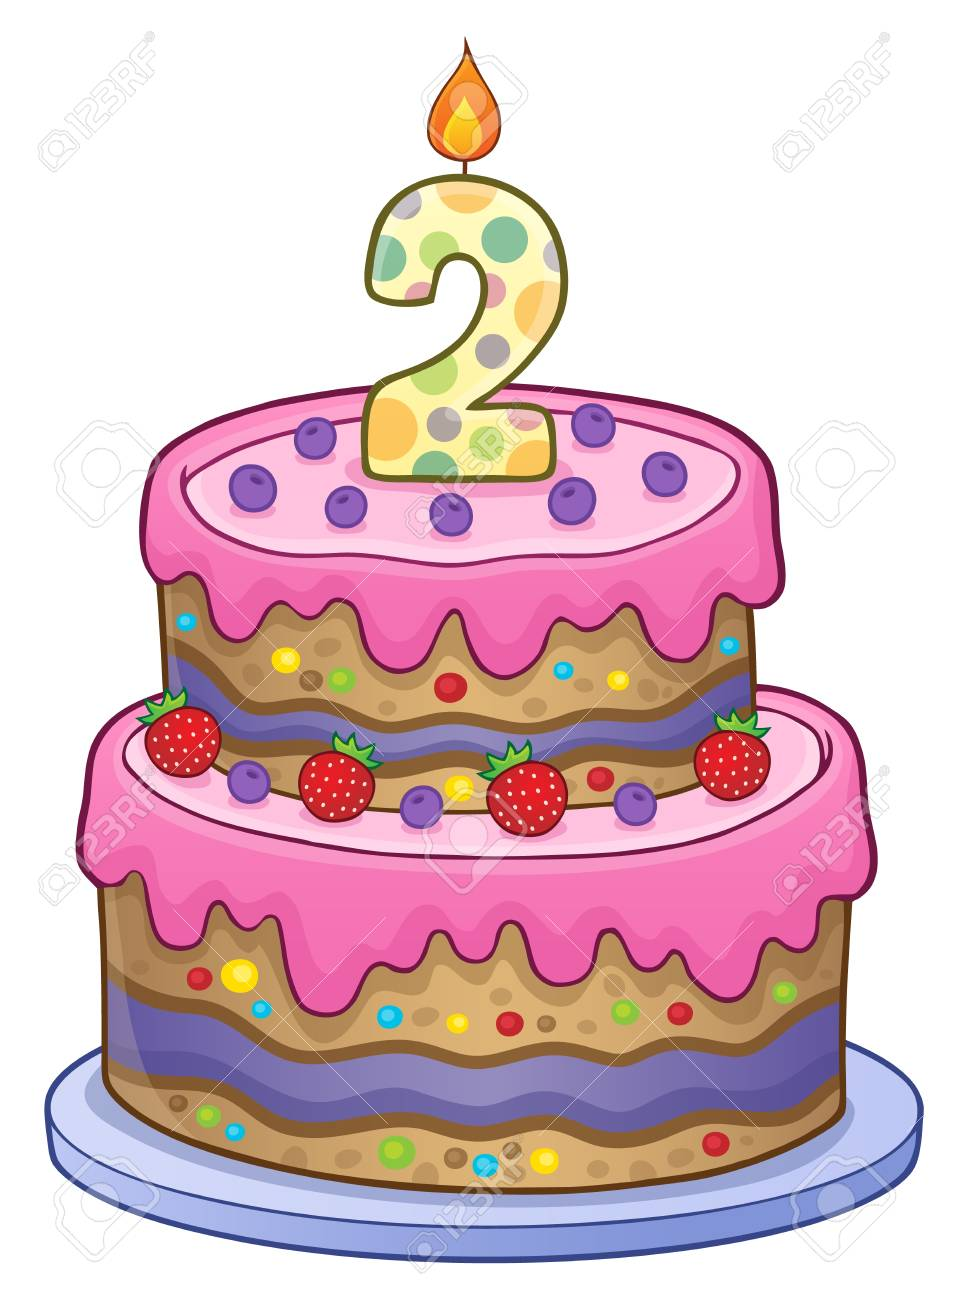 Two Layered Birthday Cake For 2 Years Old Royalty Free Cliparts